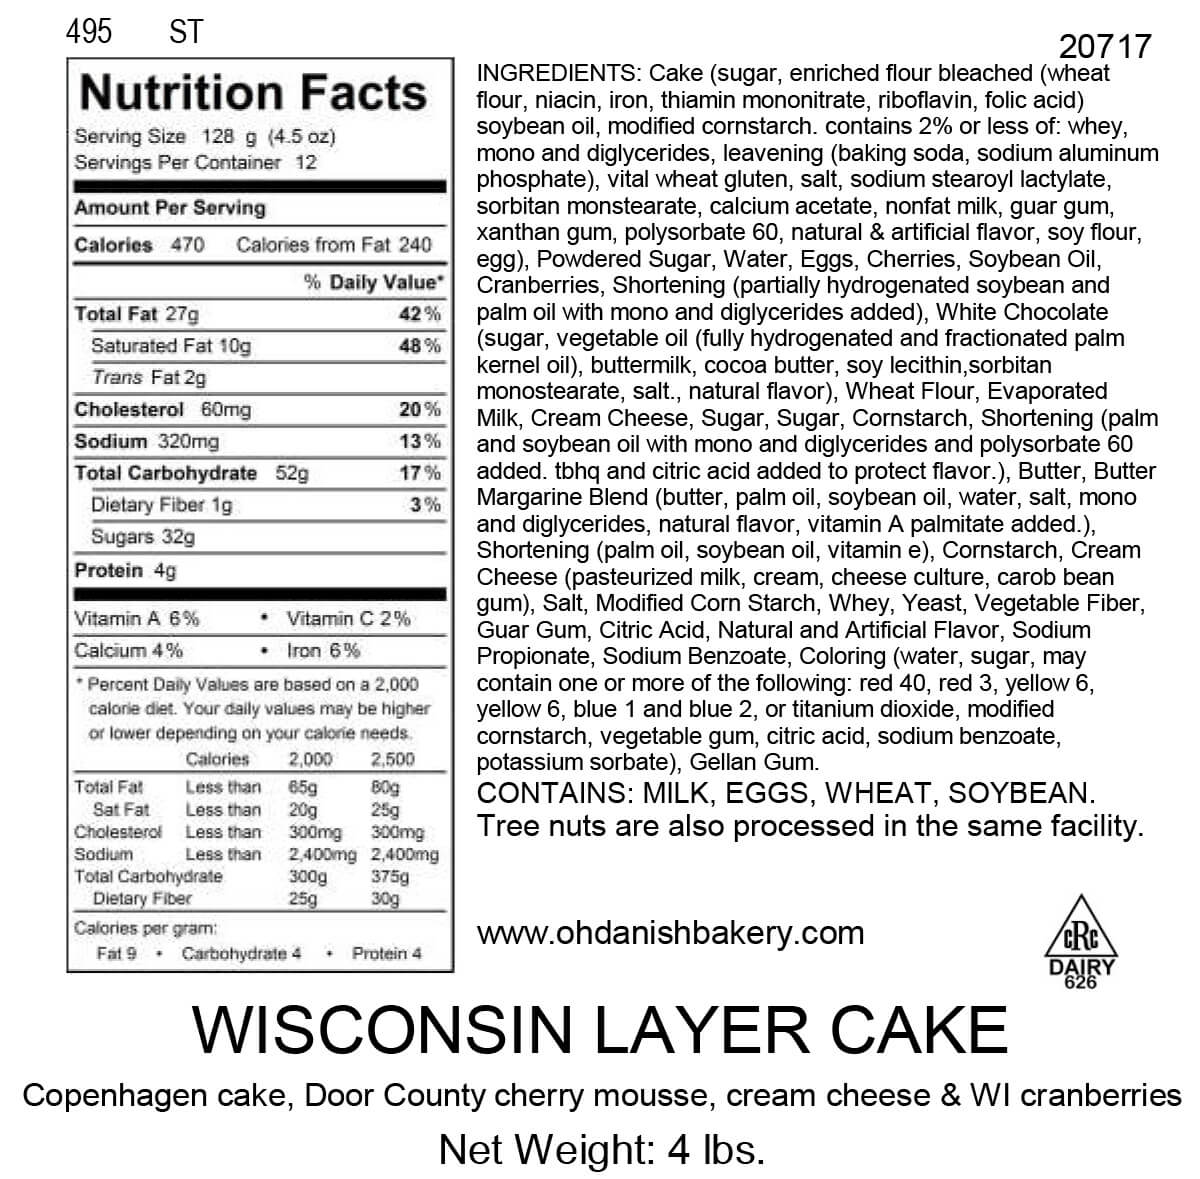 Nutritional Label for Wisconsin Layer Cake